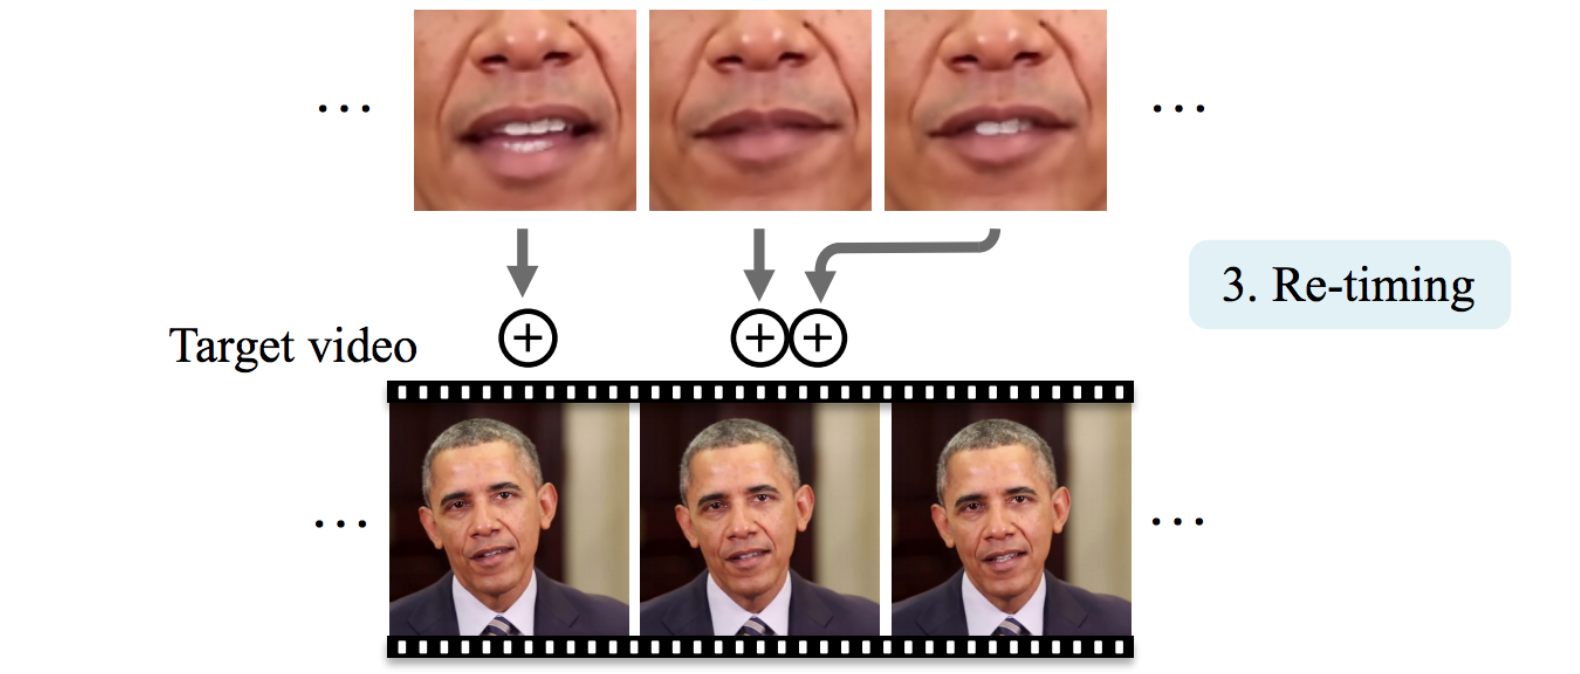 Deep Videos deepfake To And Detect Fakes Learning How It